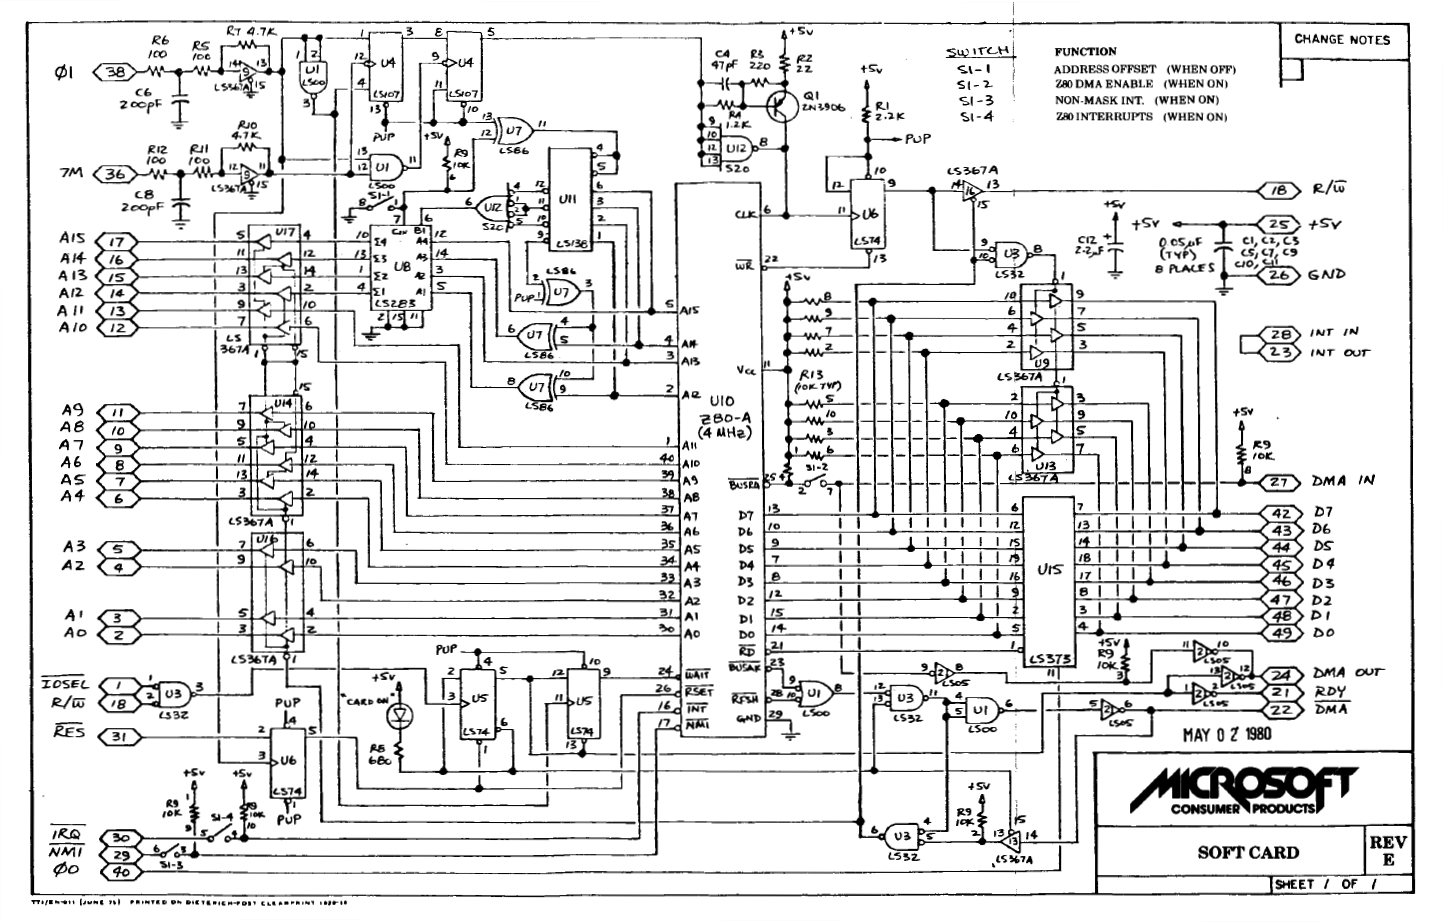 Z80 Schematic Circuit Diagram - Residential Electrical Symbols •